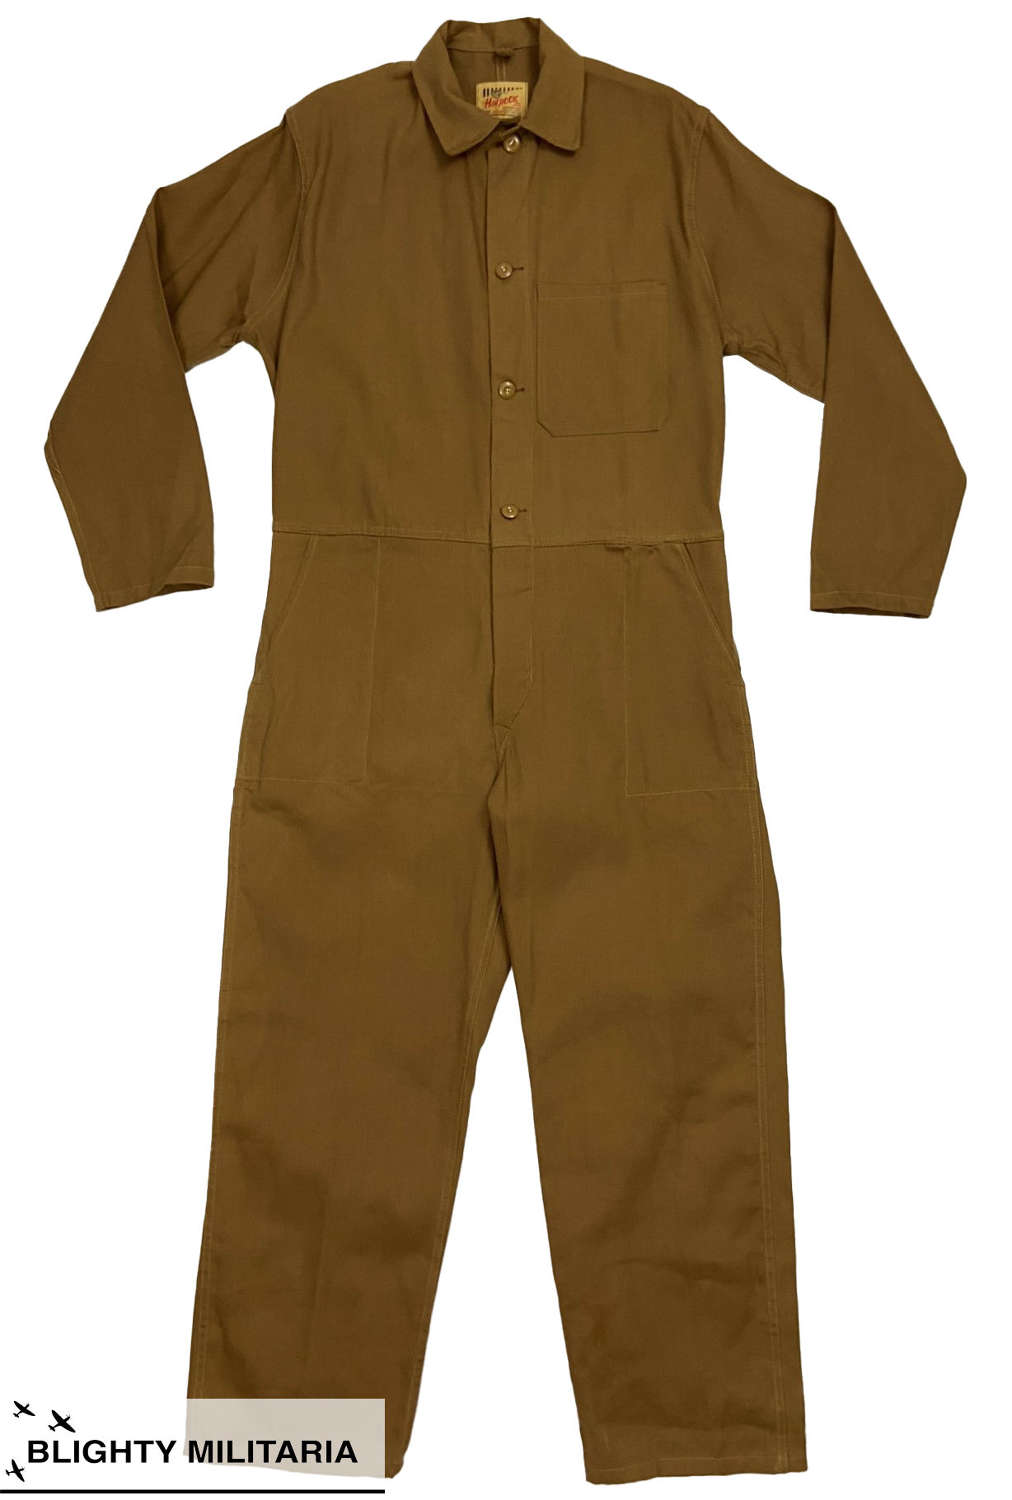 Original 1960s Tan Cotton Overalls by 'Harpoon' - Size 42